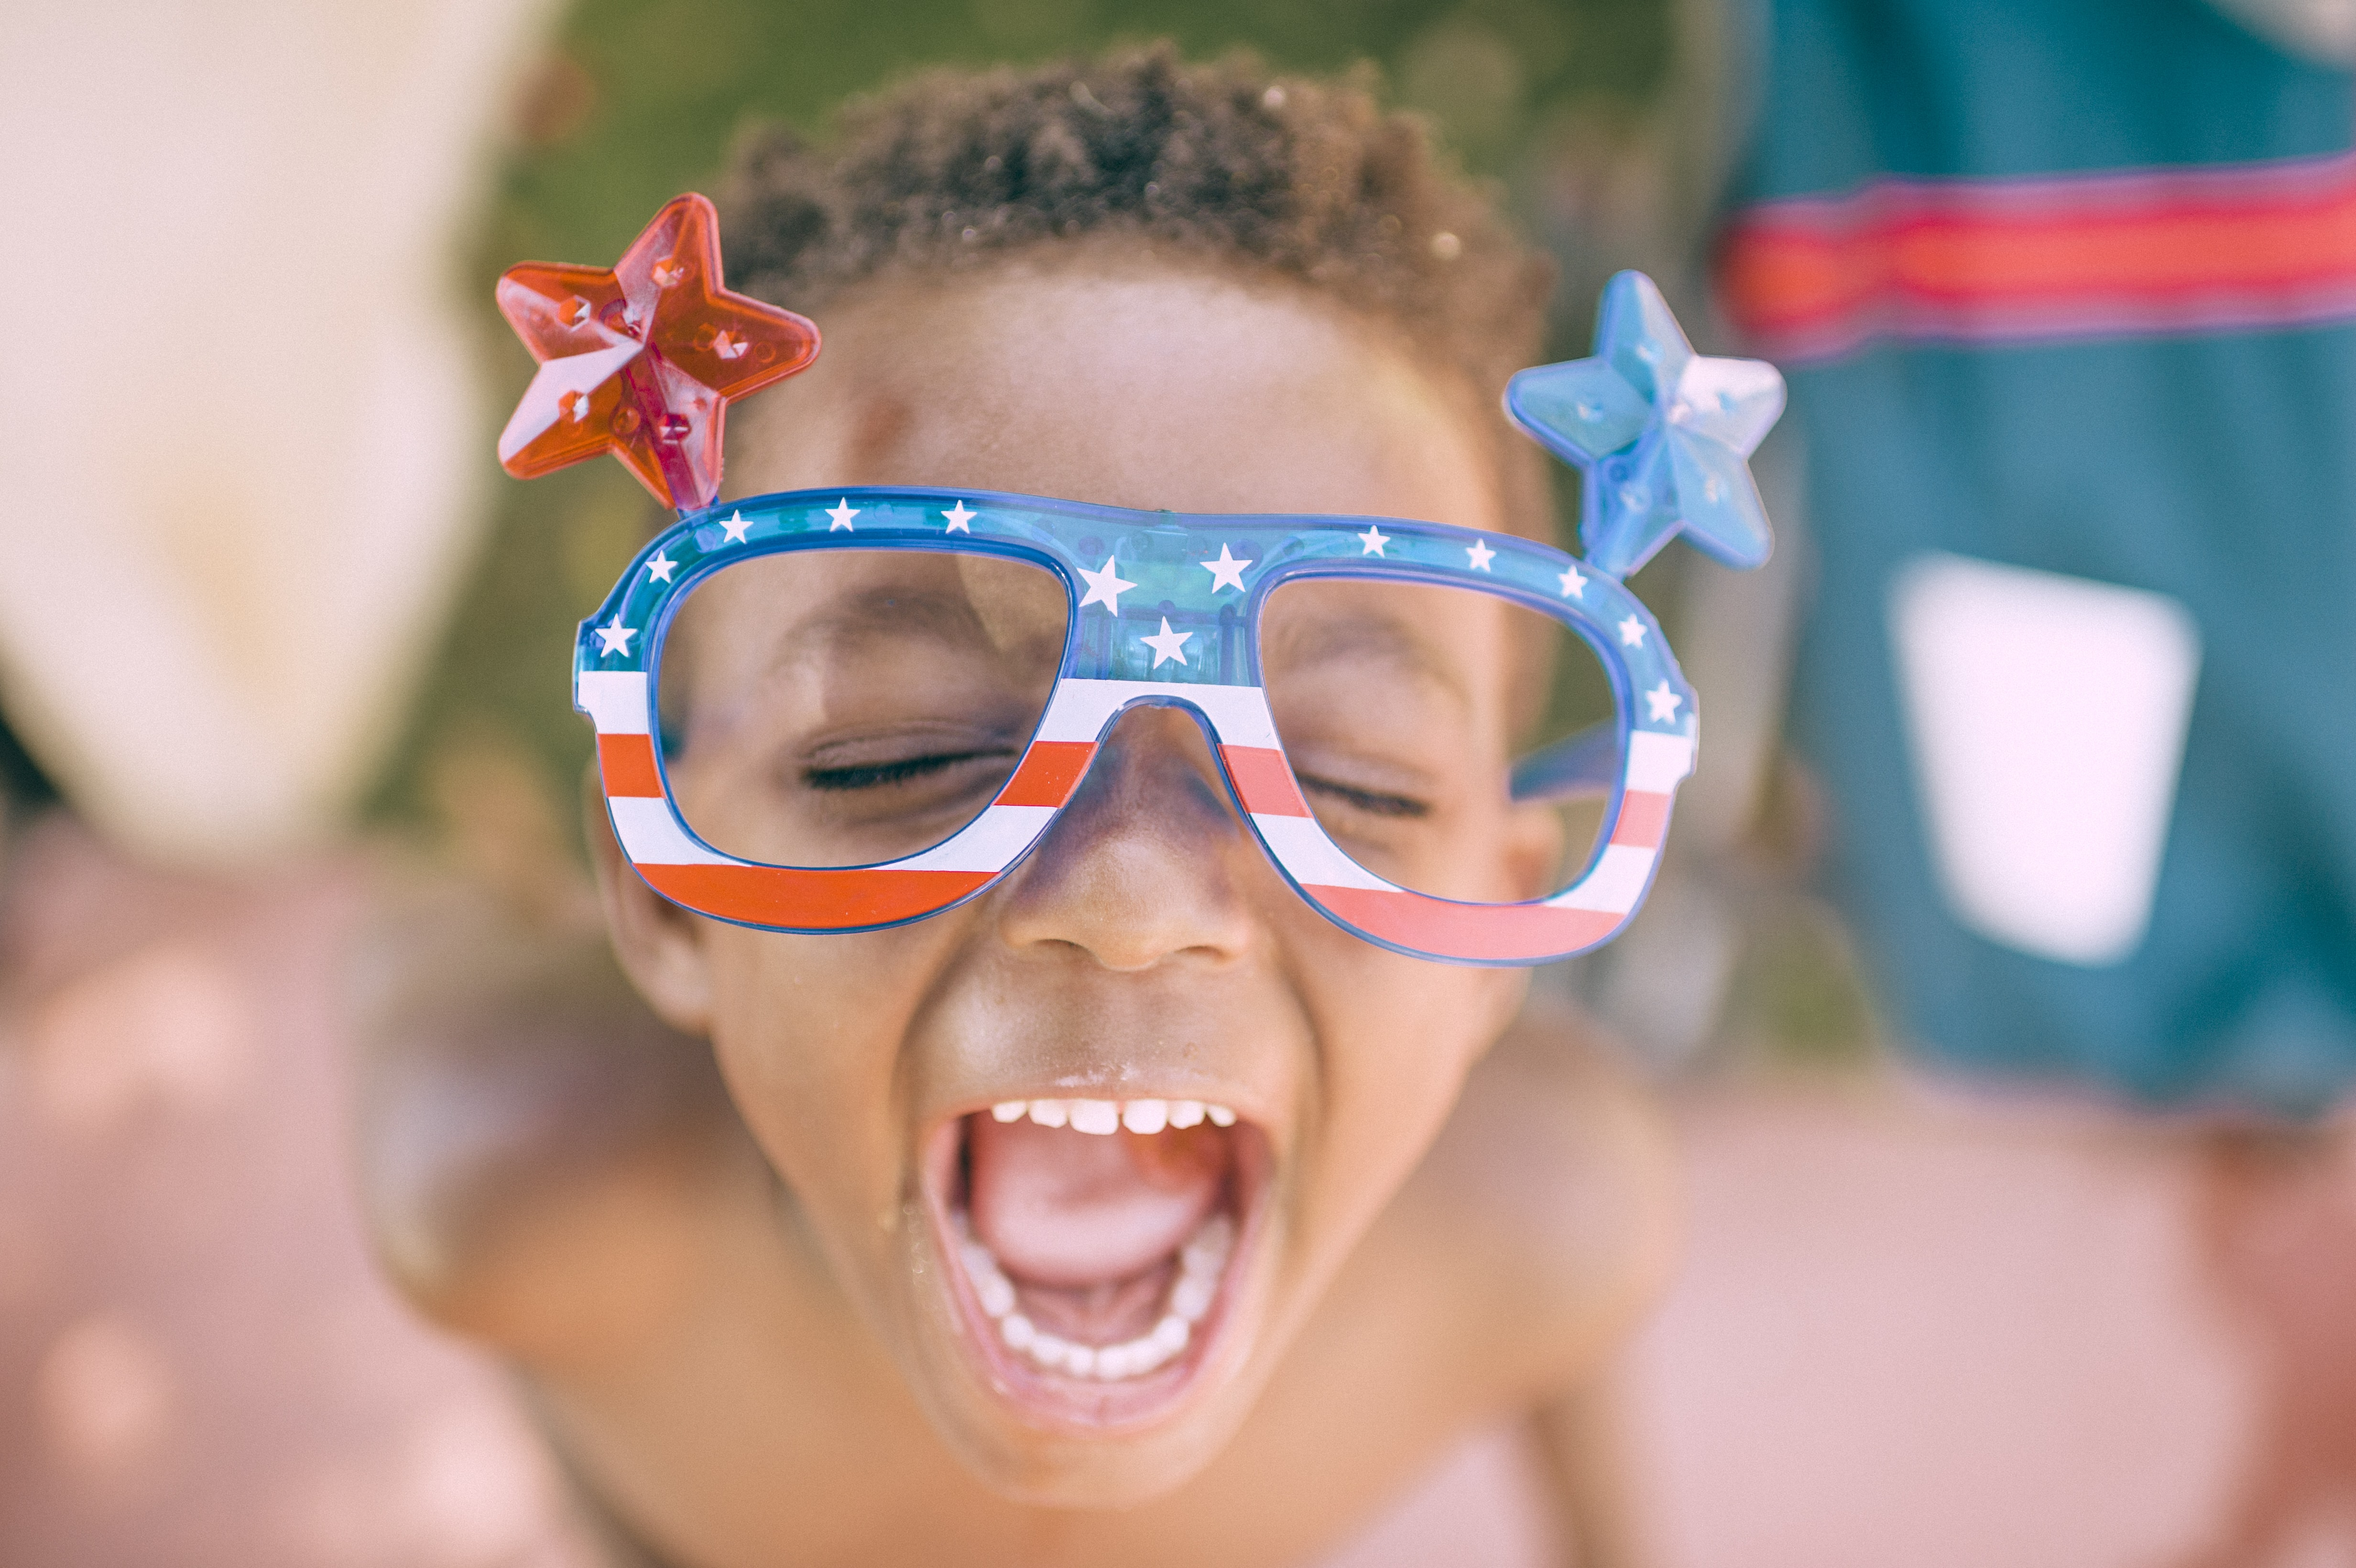 A child making a funny face while wearing goofy American patriotic glasses with plastic stars